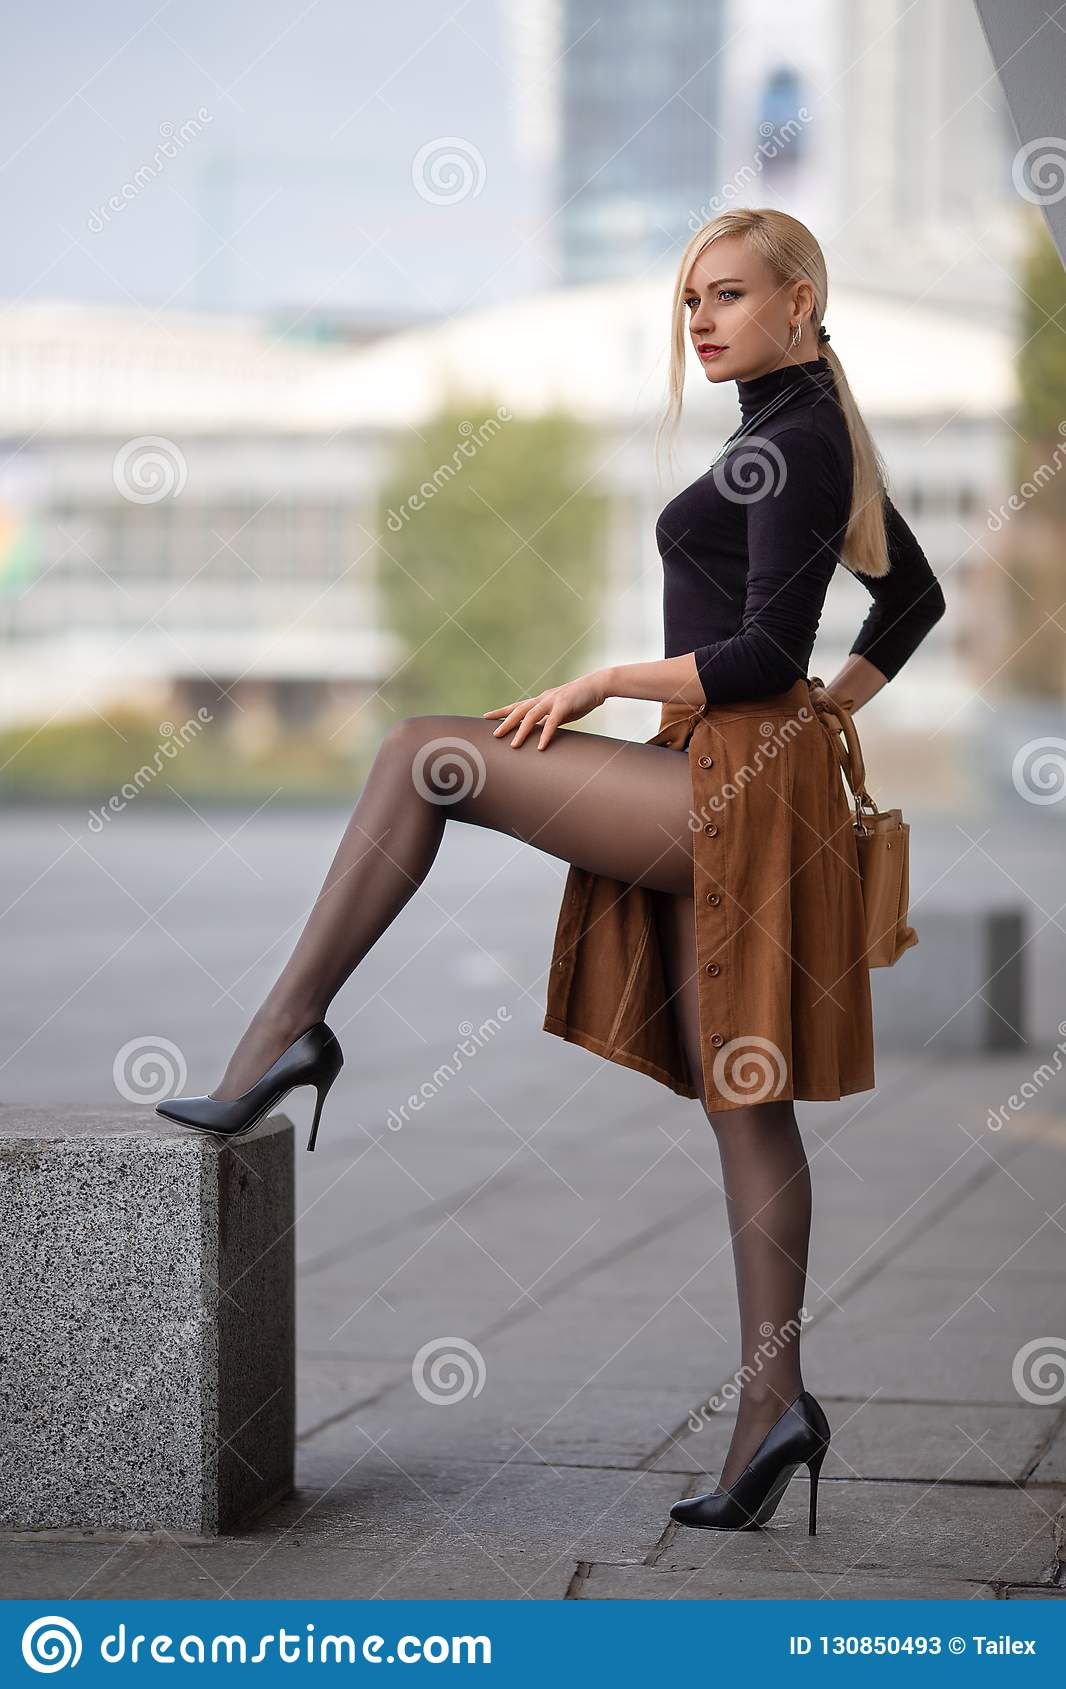 Pantyhose Stock Images - Download 10,412 Royalty Free Photos